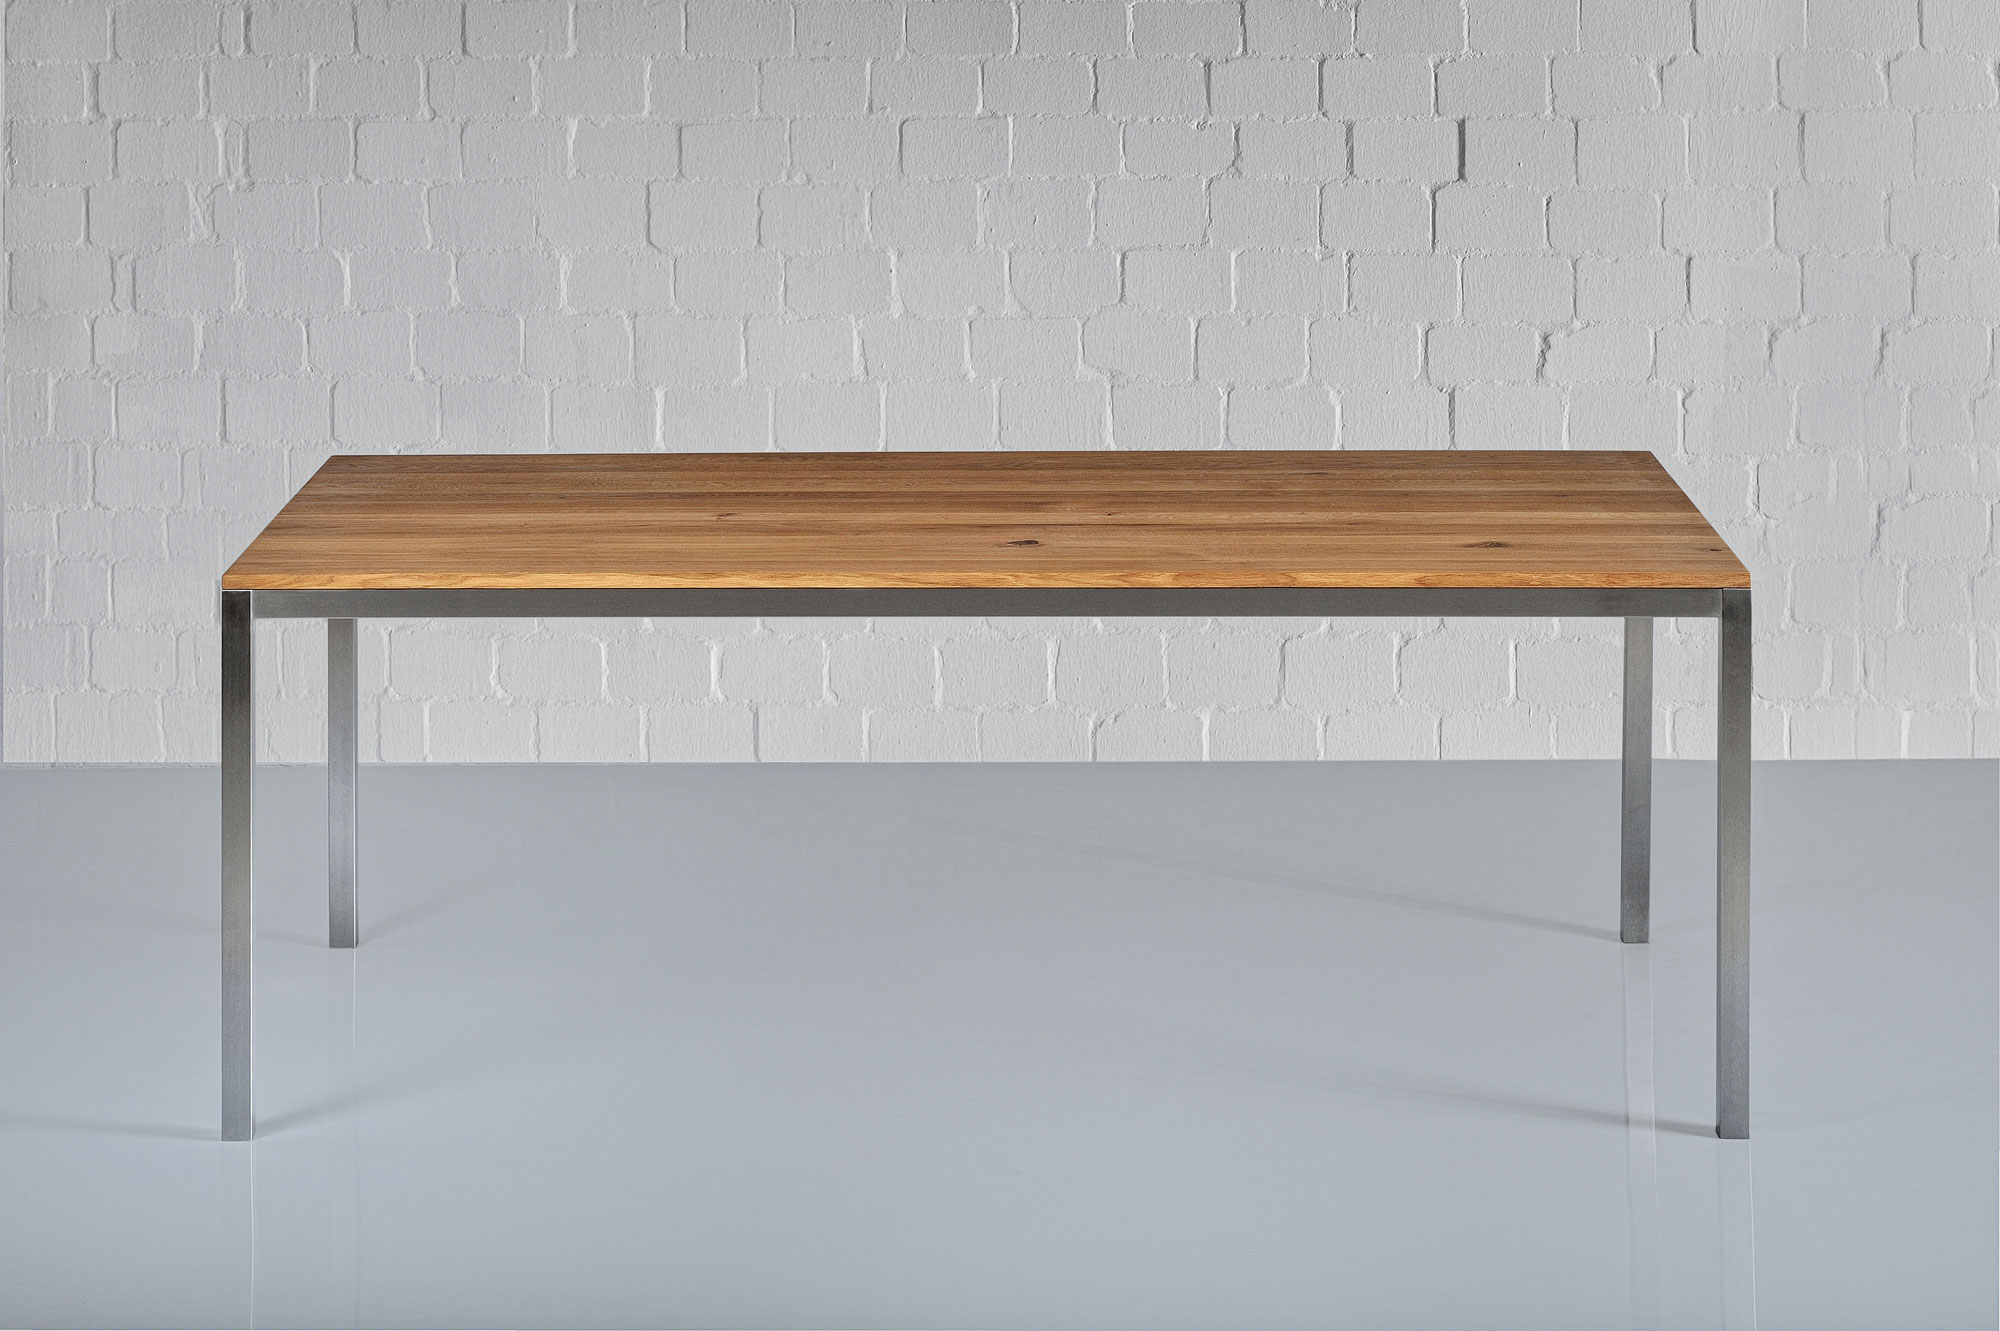 Aluminium Wood Table NOJUS 1551c custom made in solid wood by vitamin design